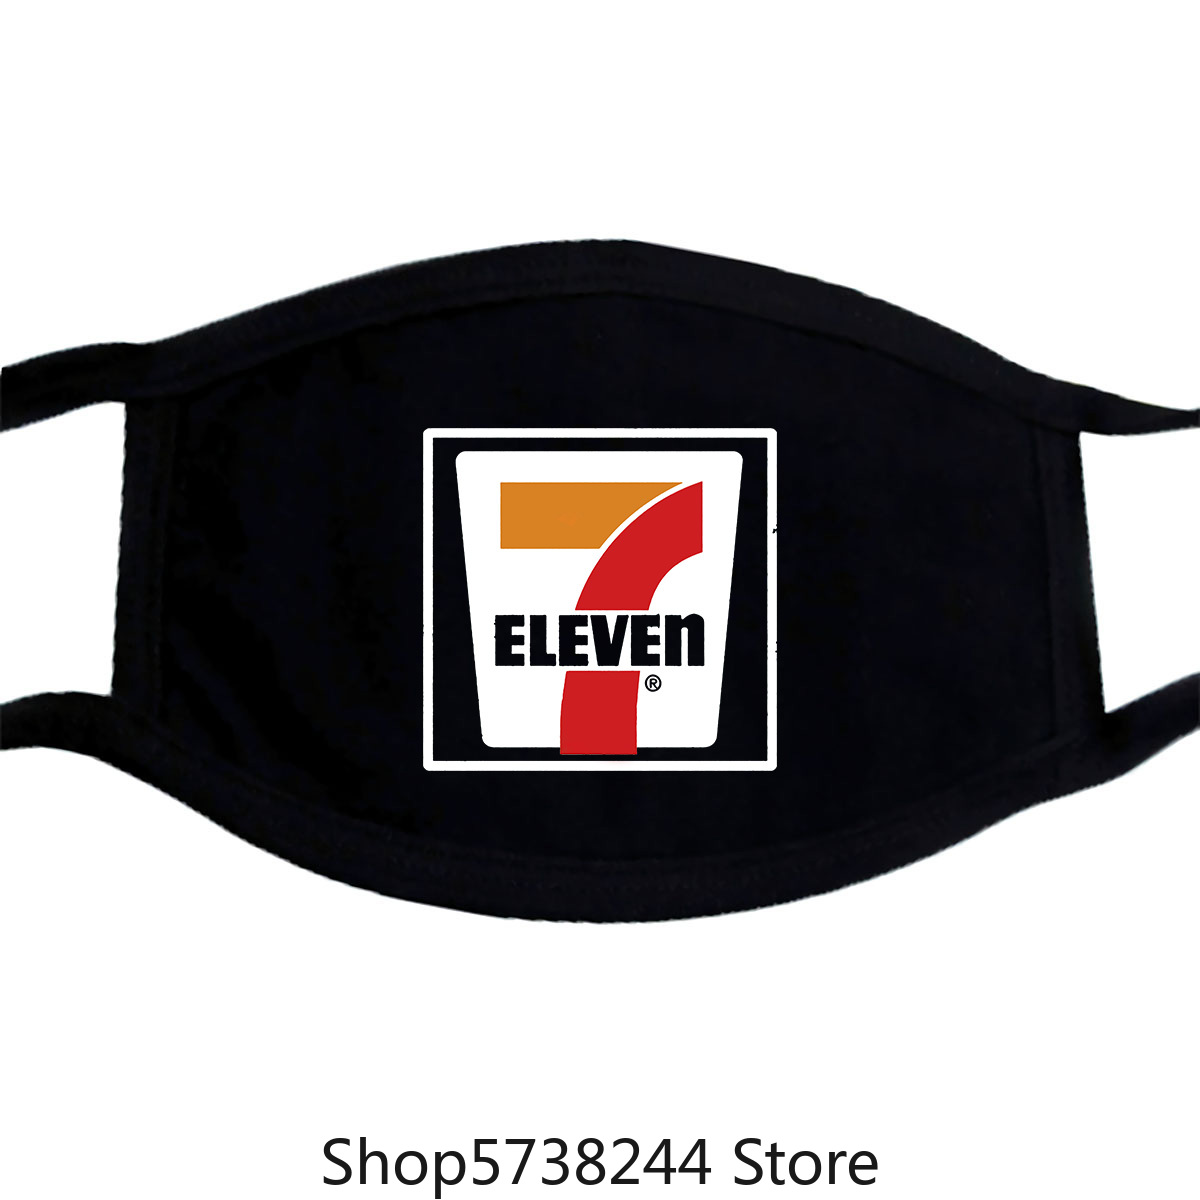 7-11, Seven, Eleven, Retro, Distressed, Logo, Mask Washable Reusable Mask